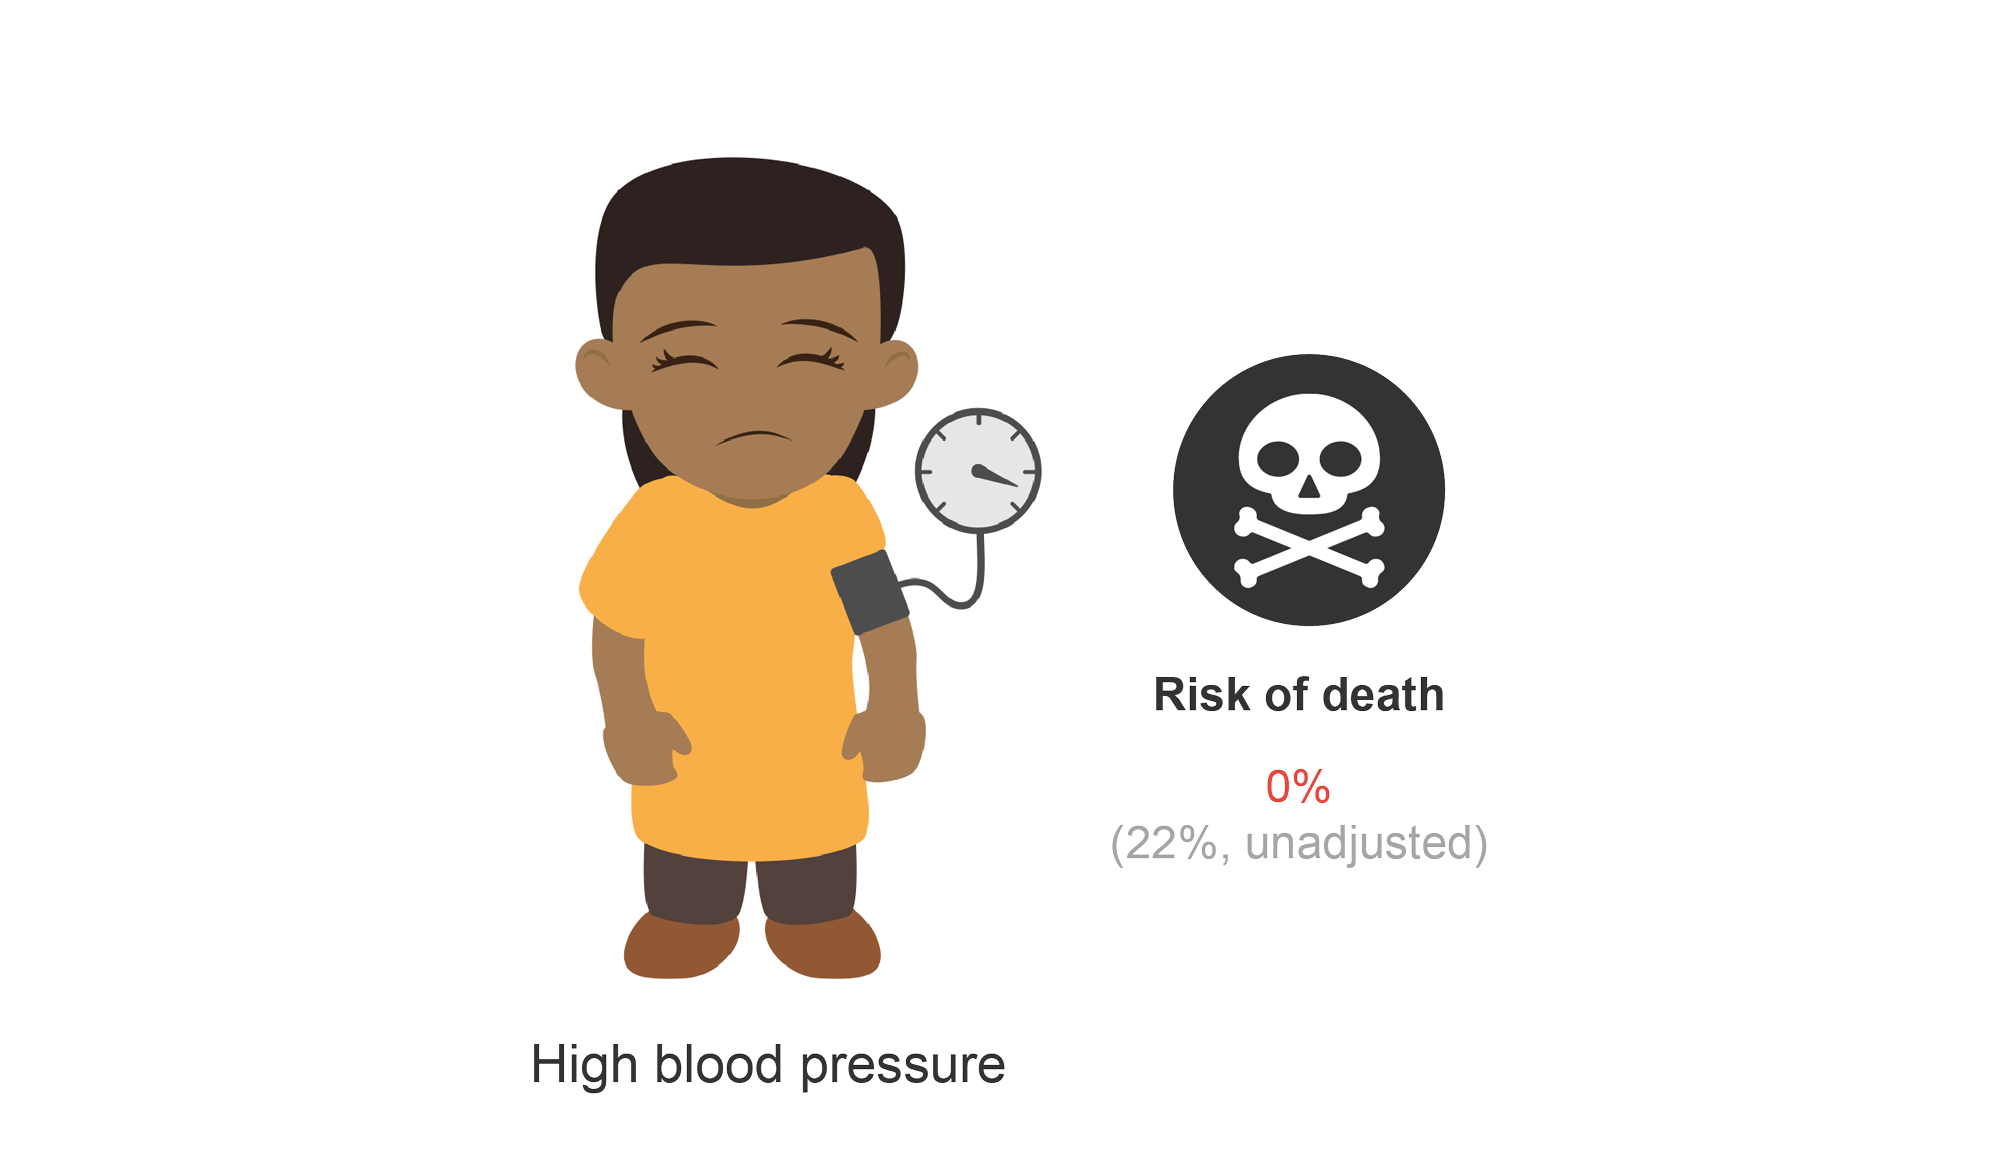 Female patient with high blood pressure and risk of death. Cartoon